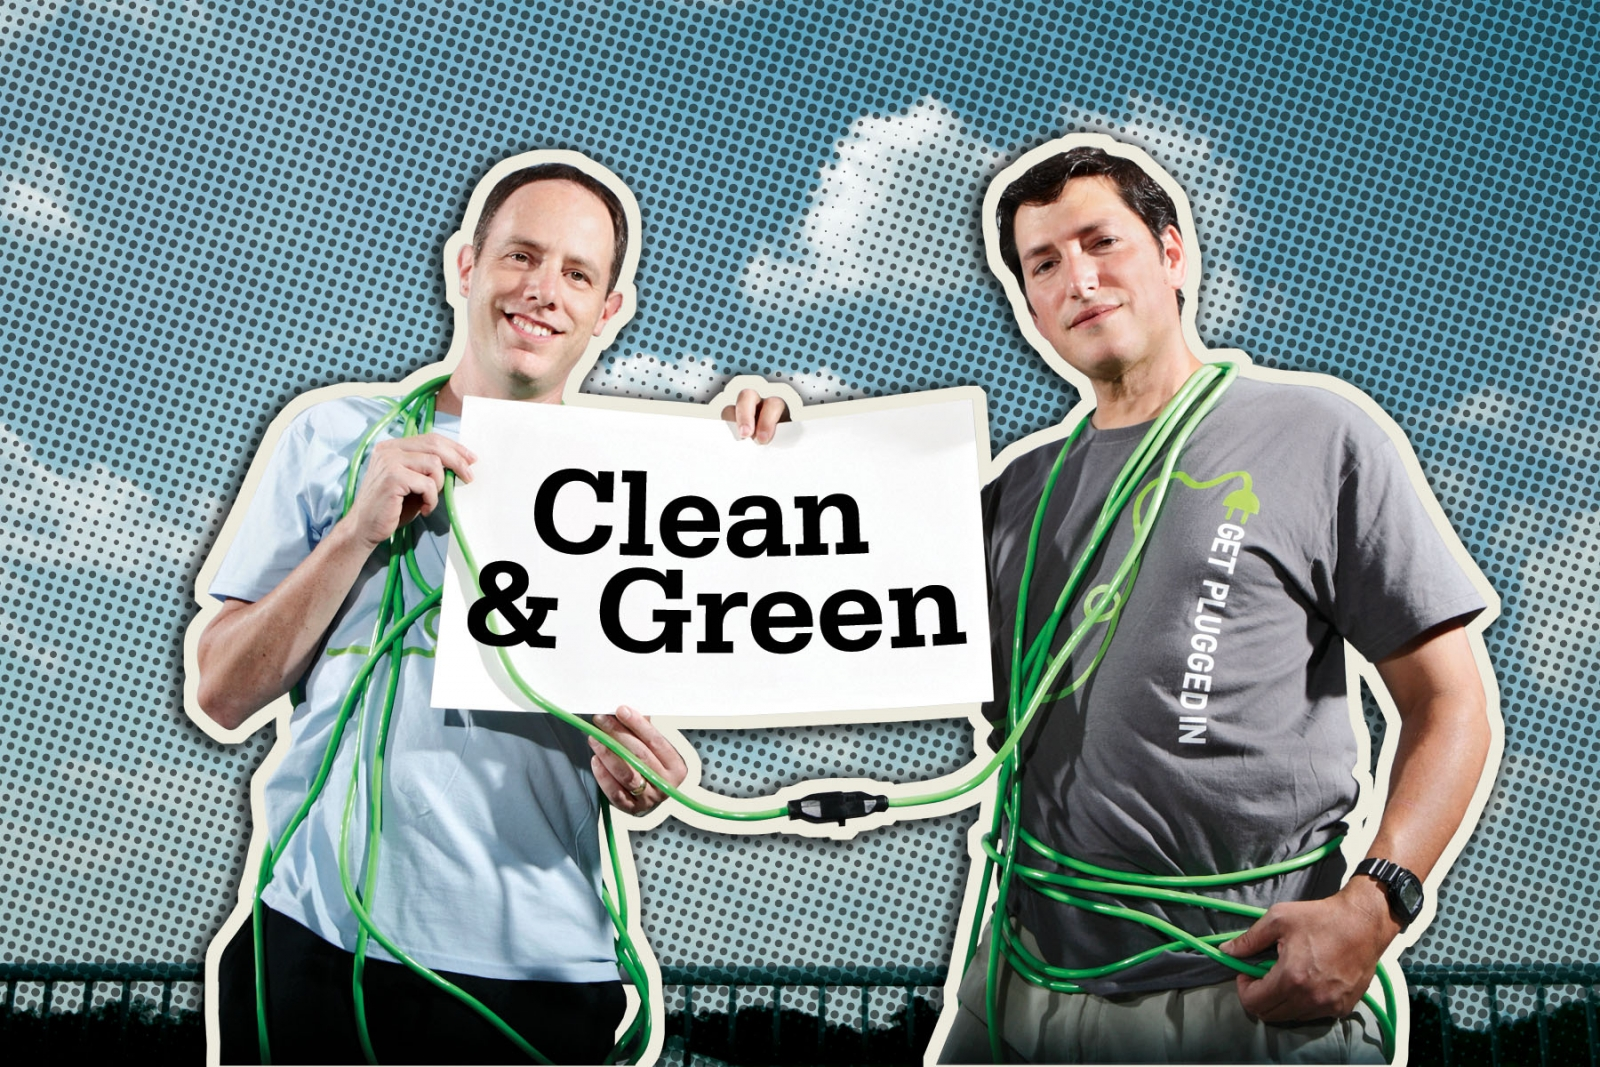 Gary Skulnik, left, and Charles Segerman co-founded Clean Currents, which was recently named the fastest growing retail energy company in the nation by Inc. magazine. Photo credit: Jonathan Timmes